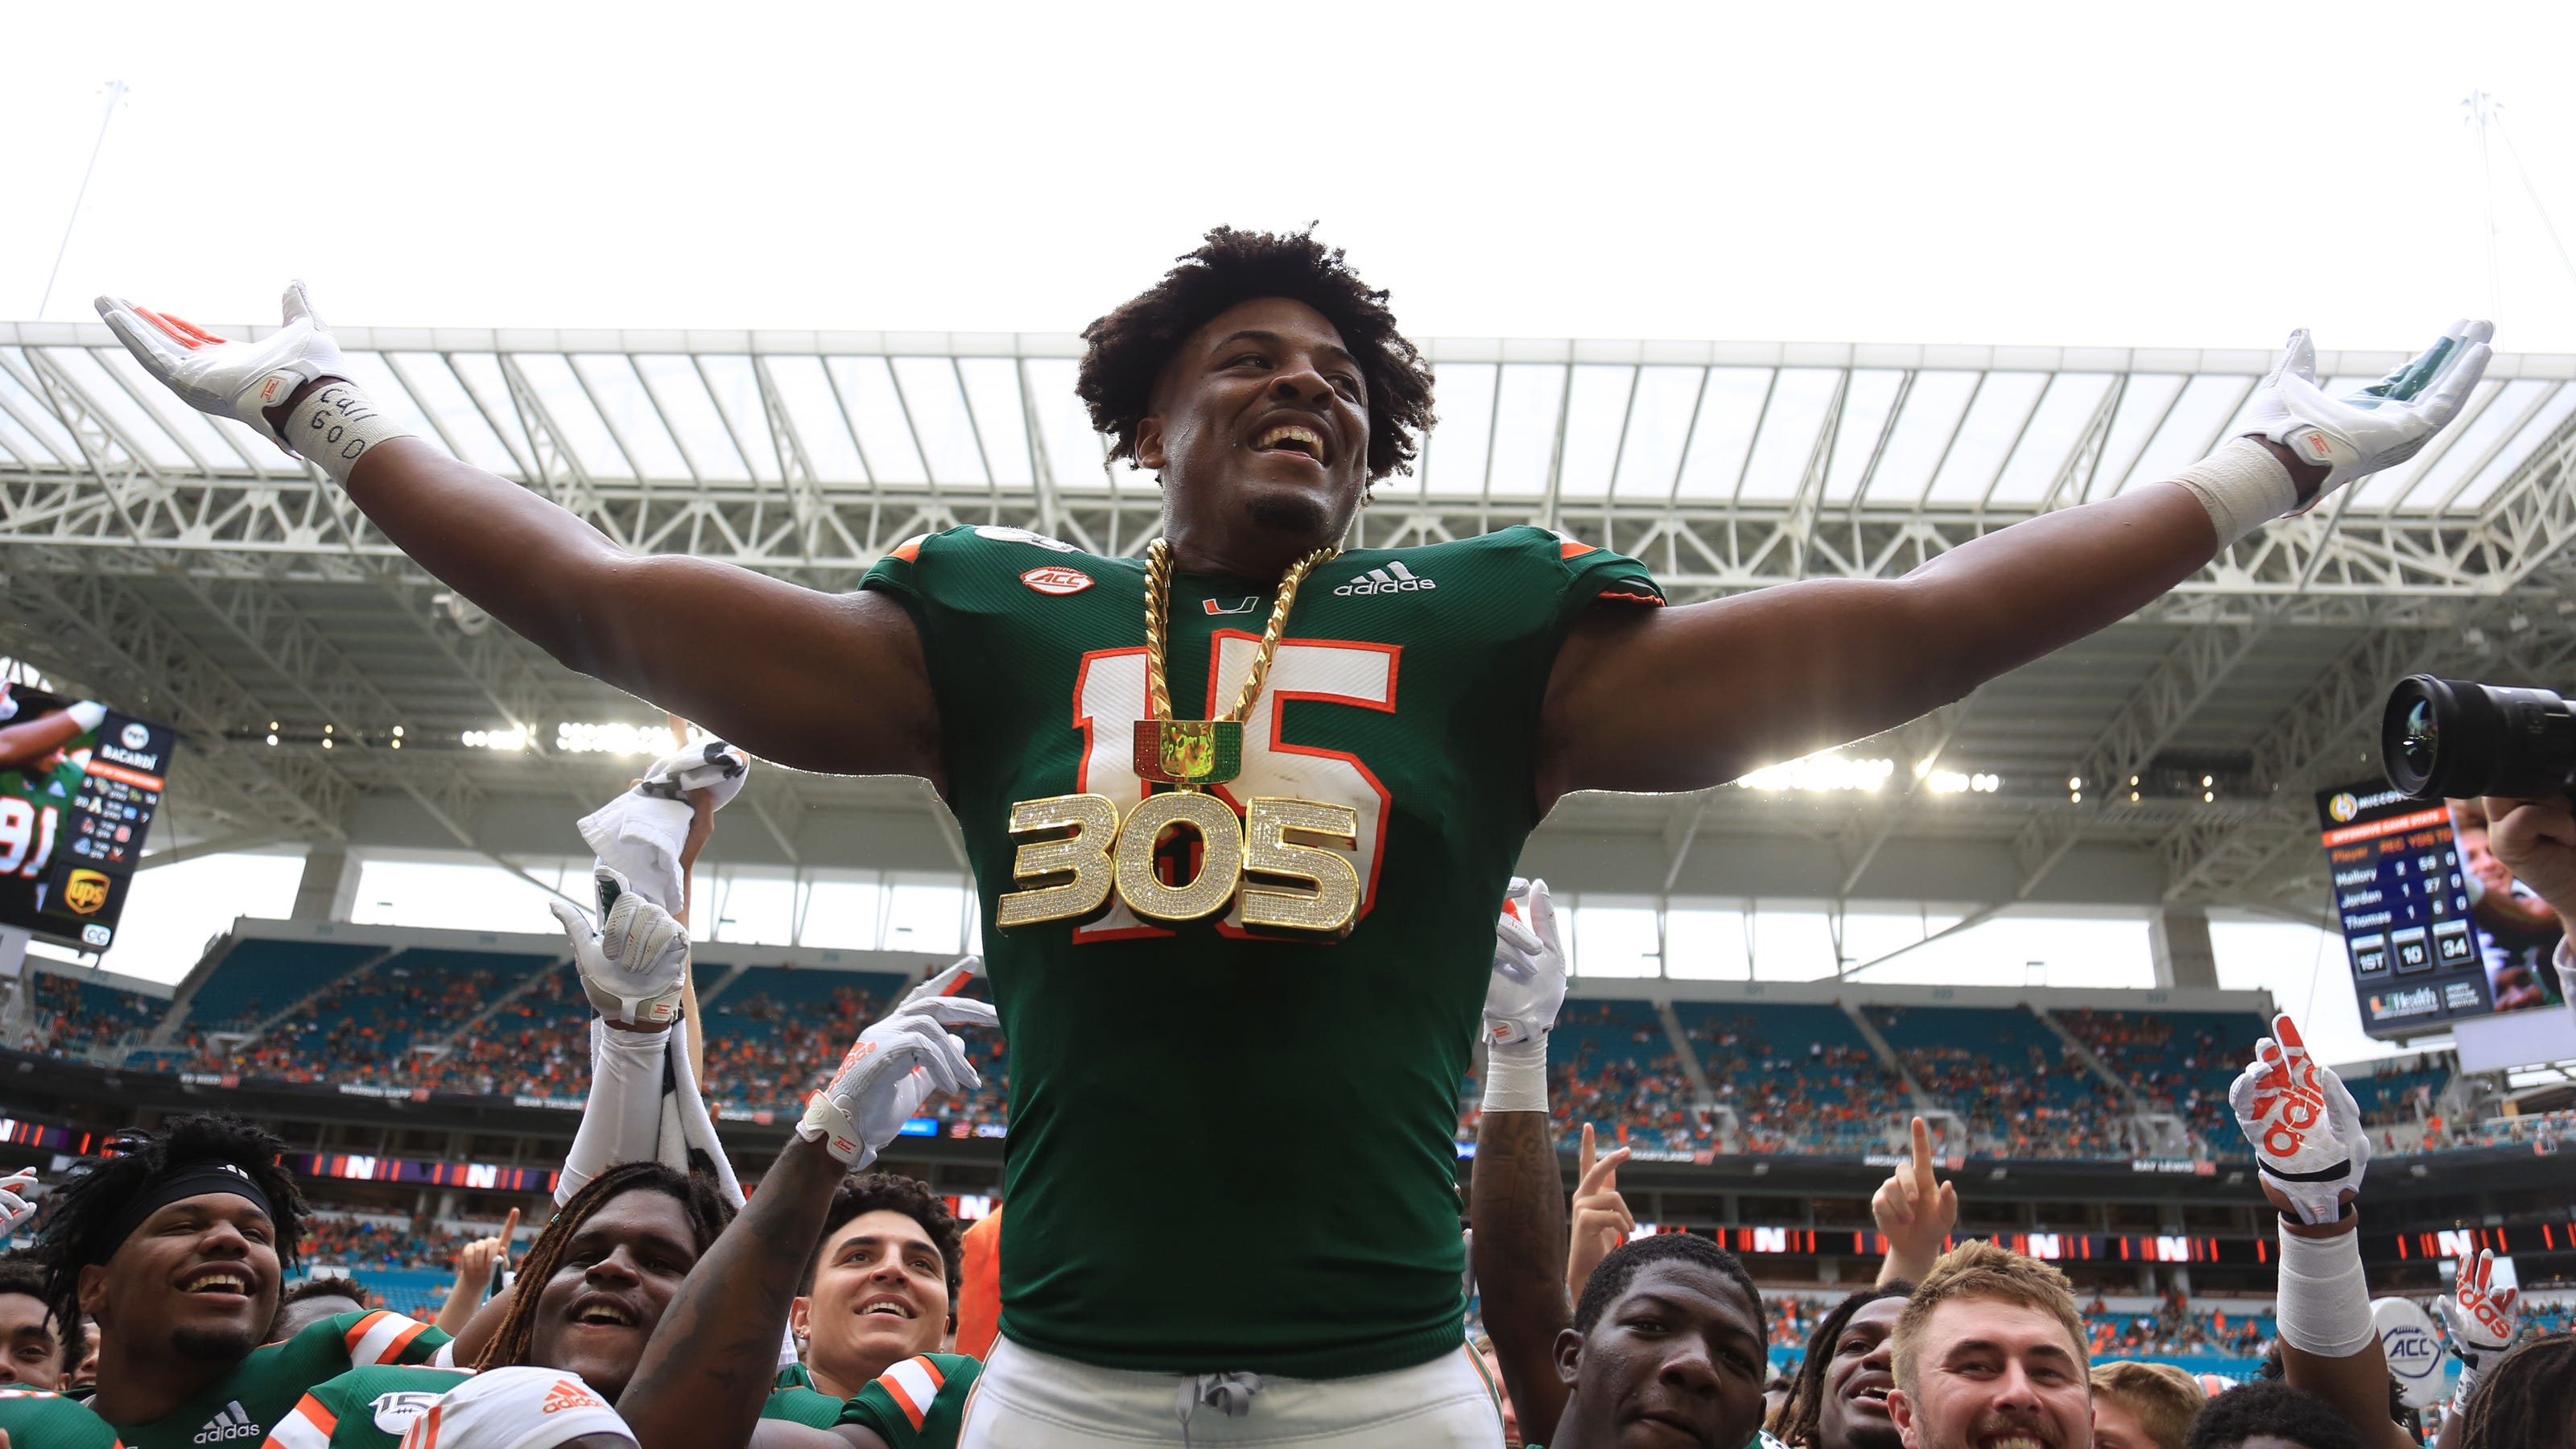 VIDEO: Opting out had benefit for ex-Miami Hurricanes DE Greg Rousseau